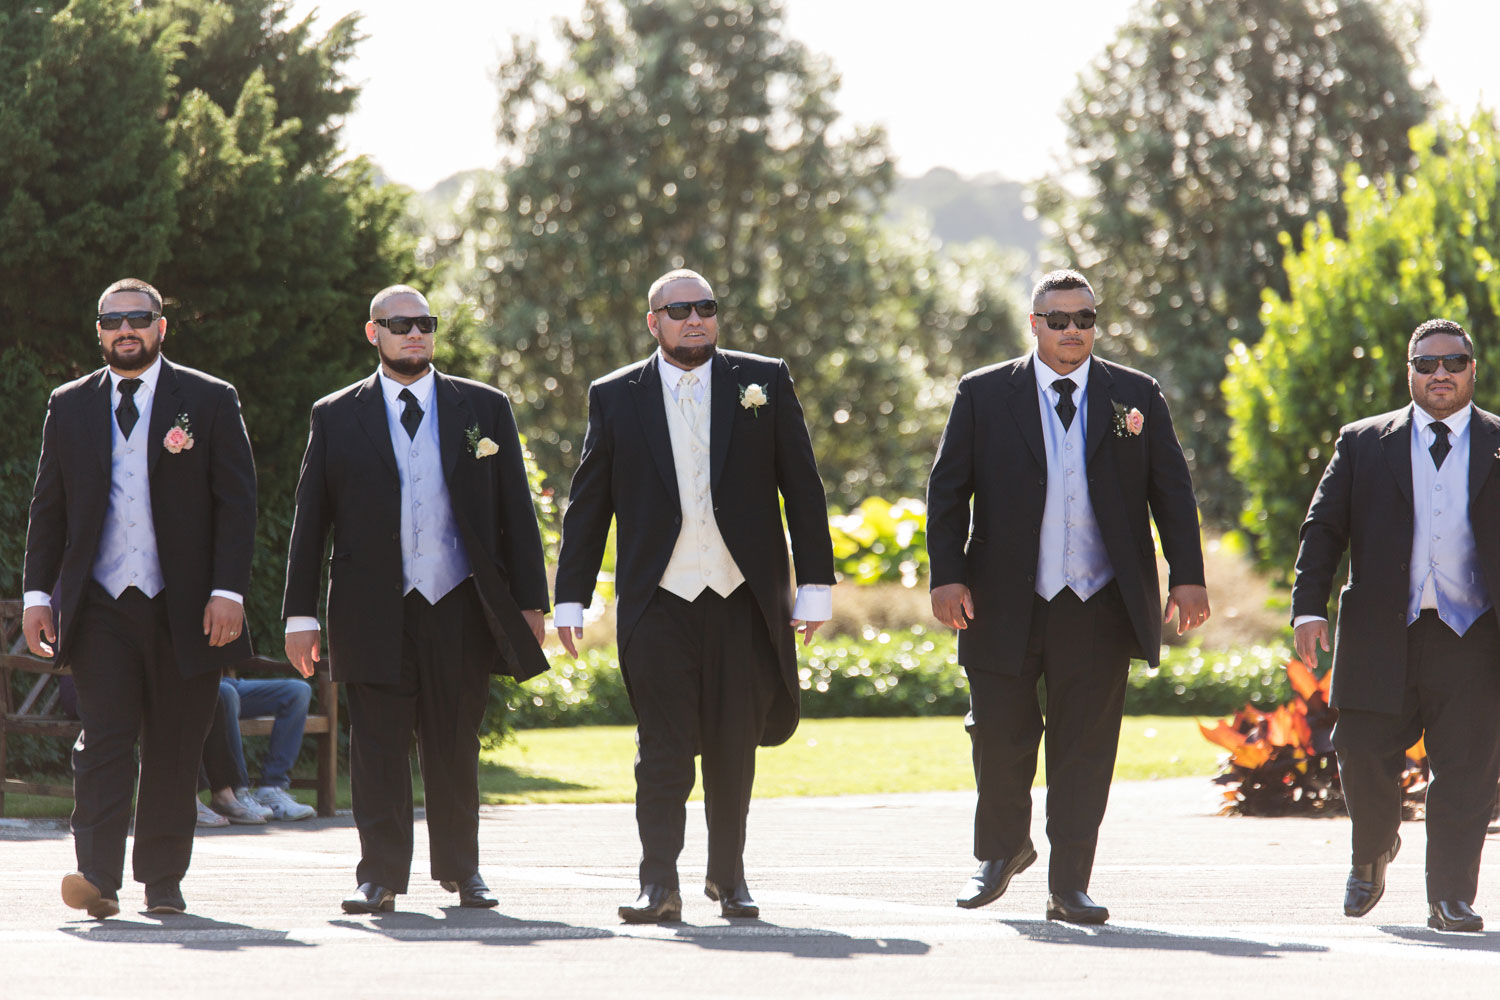 auckland botanic gardens wedding the boys